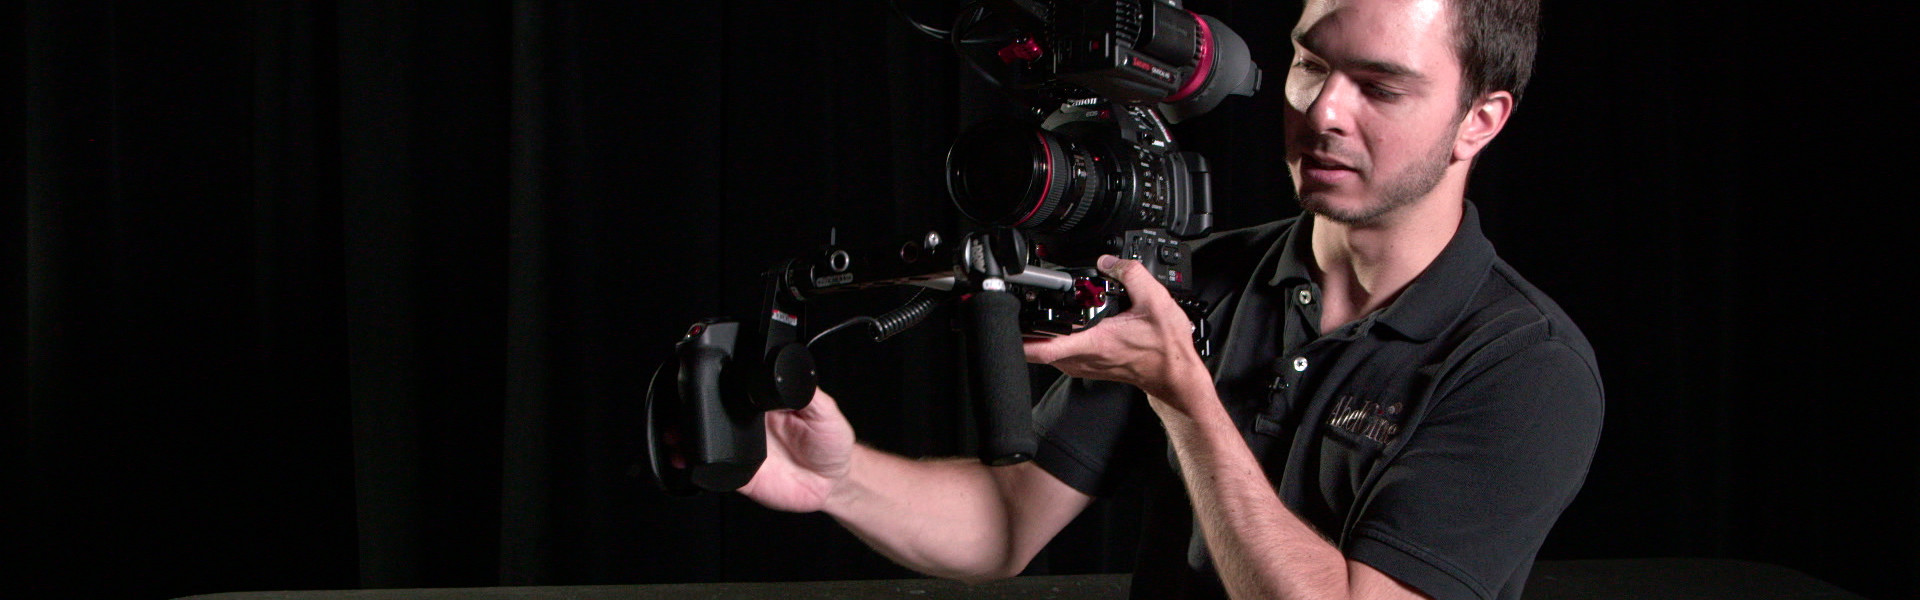 Header image for article At the Bench: C100 Mark II Rigging Options